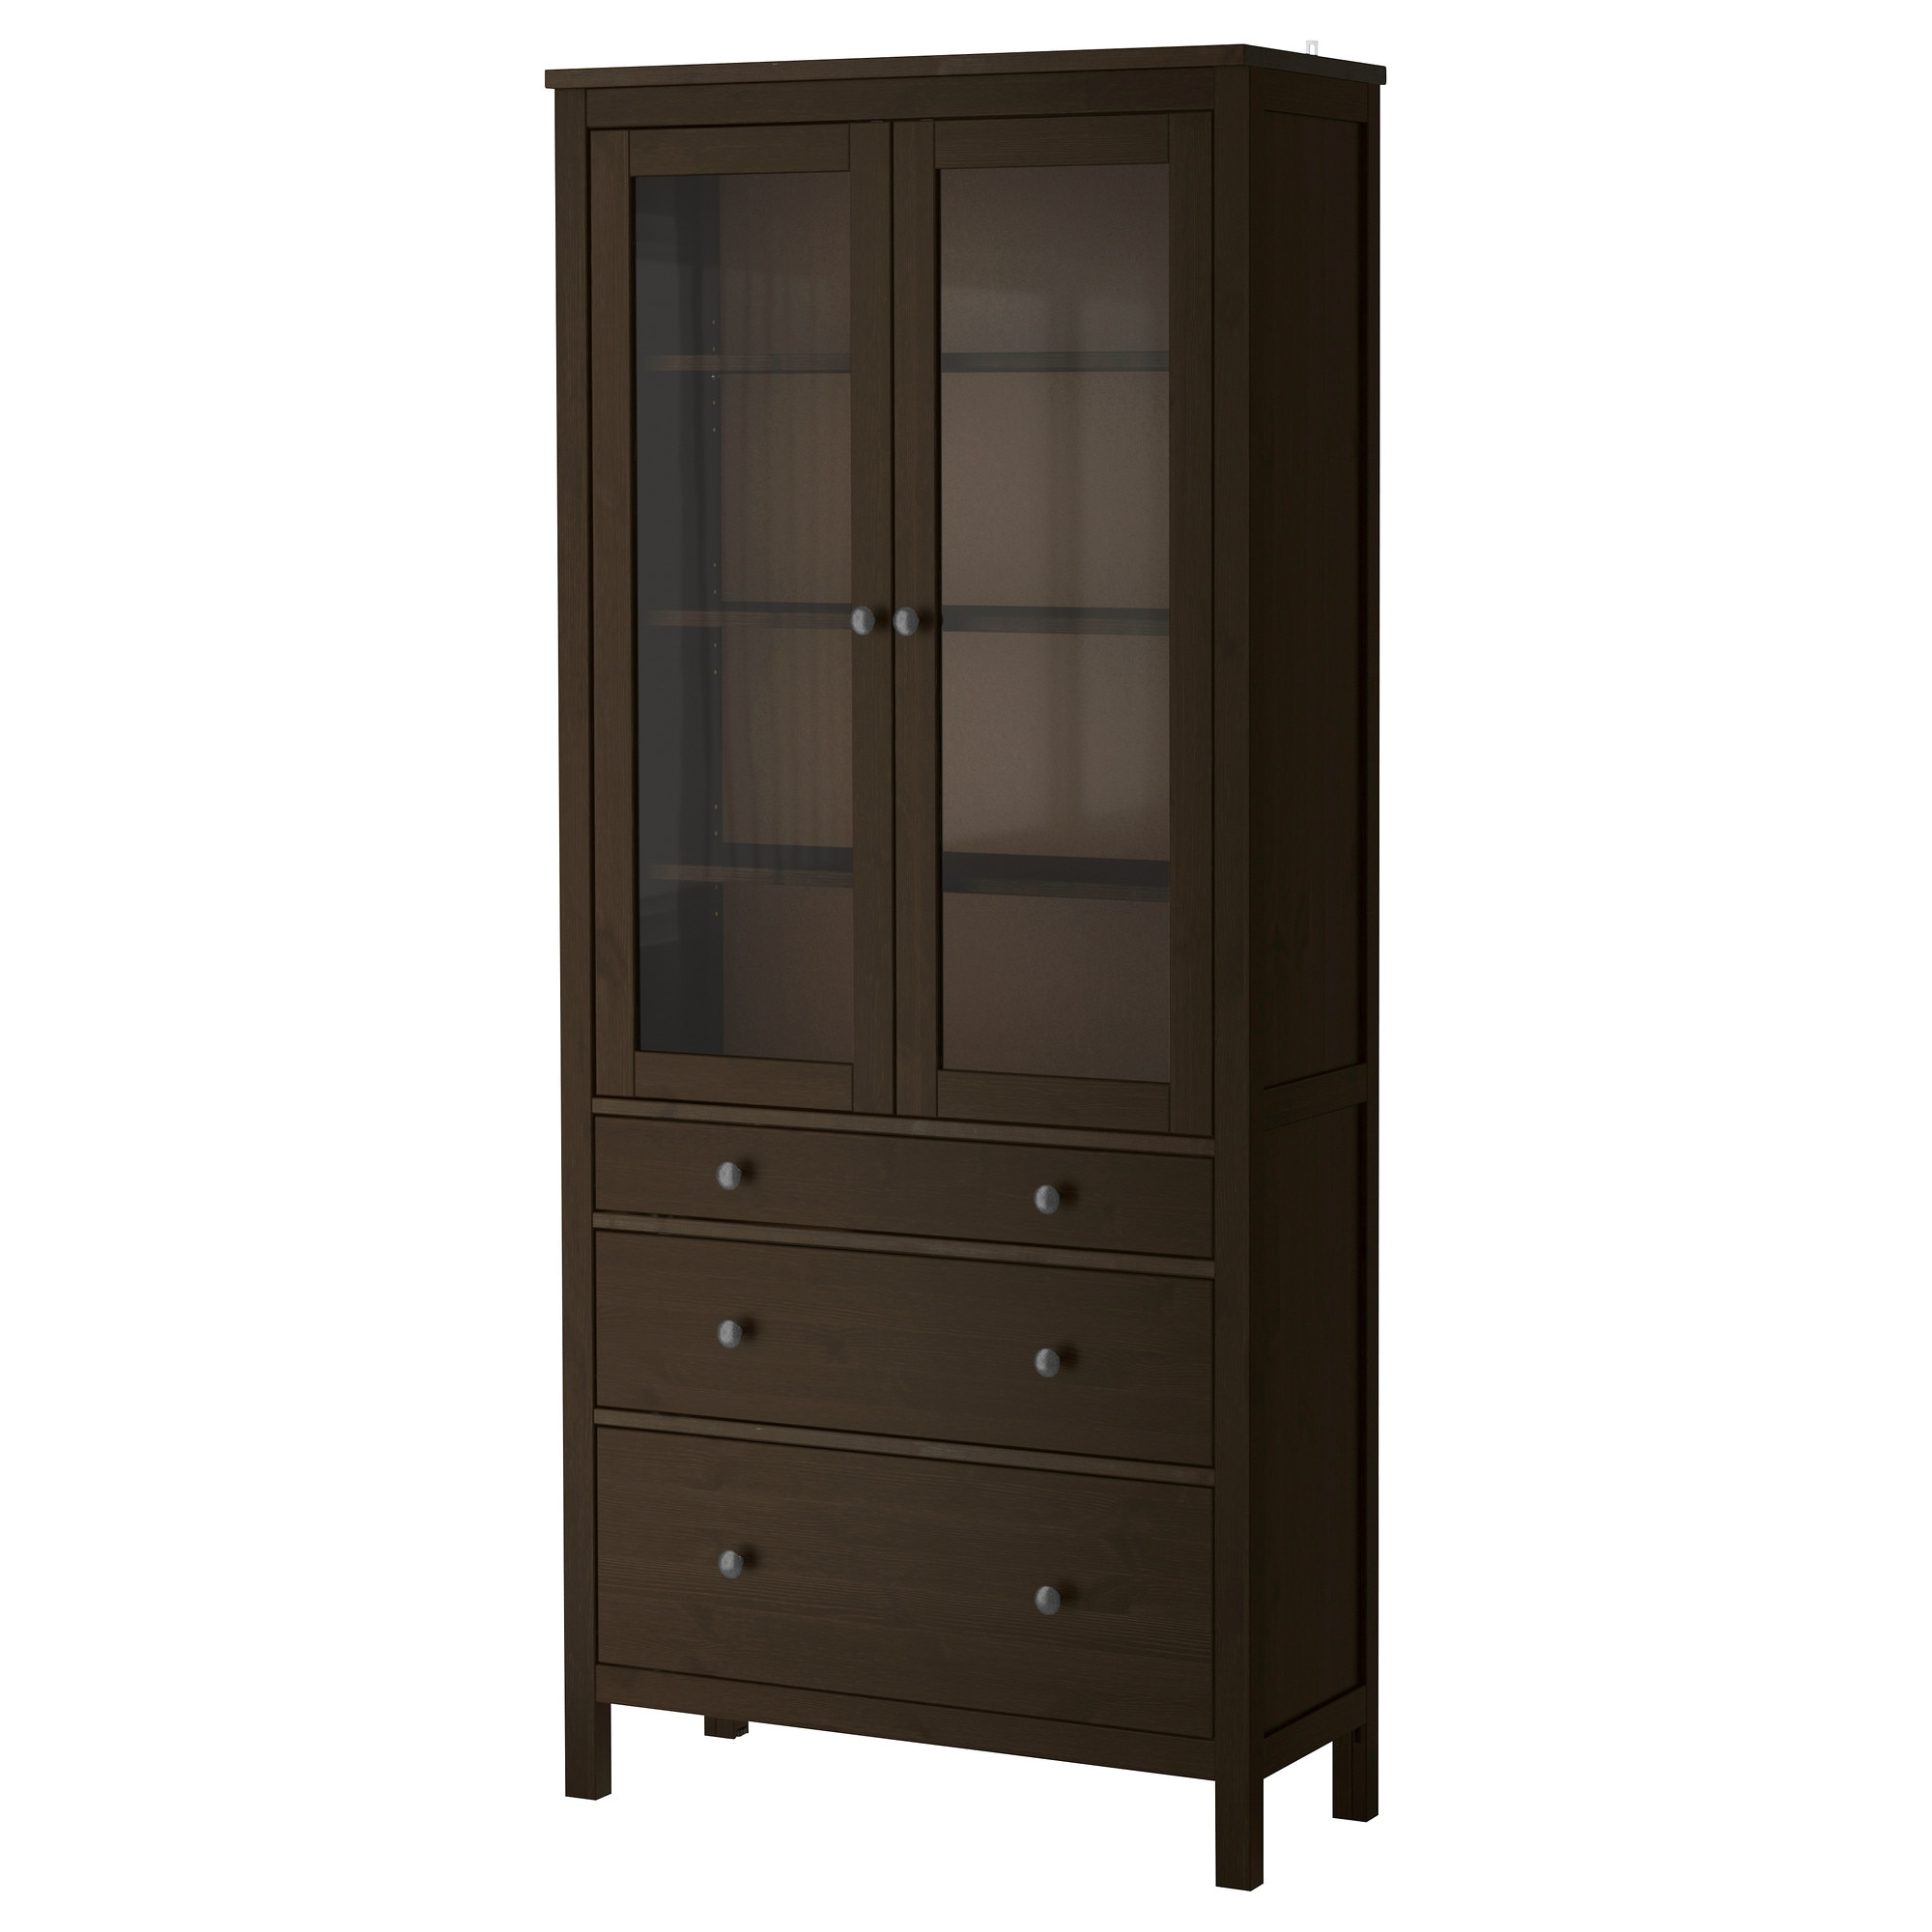 Dining Room Cabinets Ikea hemnes glass-door cabinet with 3 drawers - black-brown - ikea